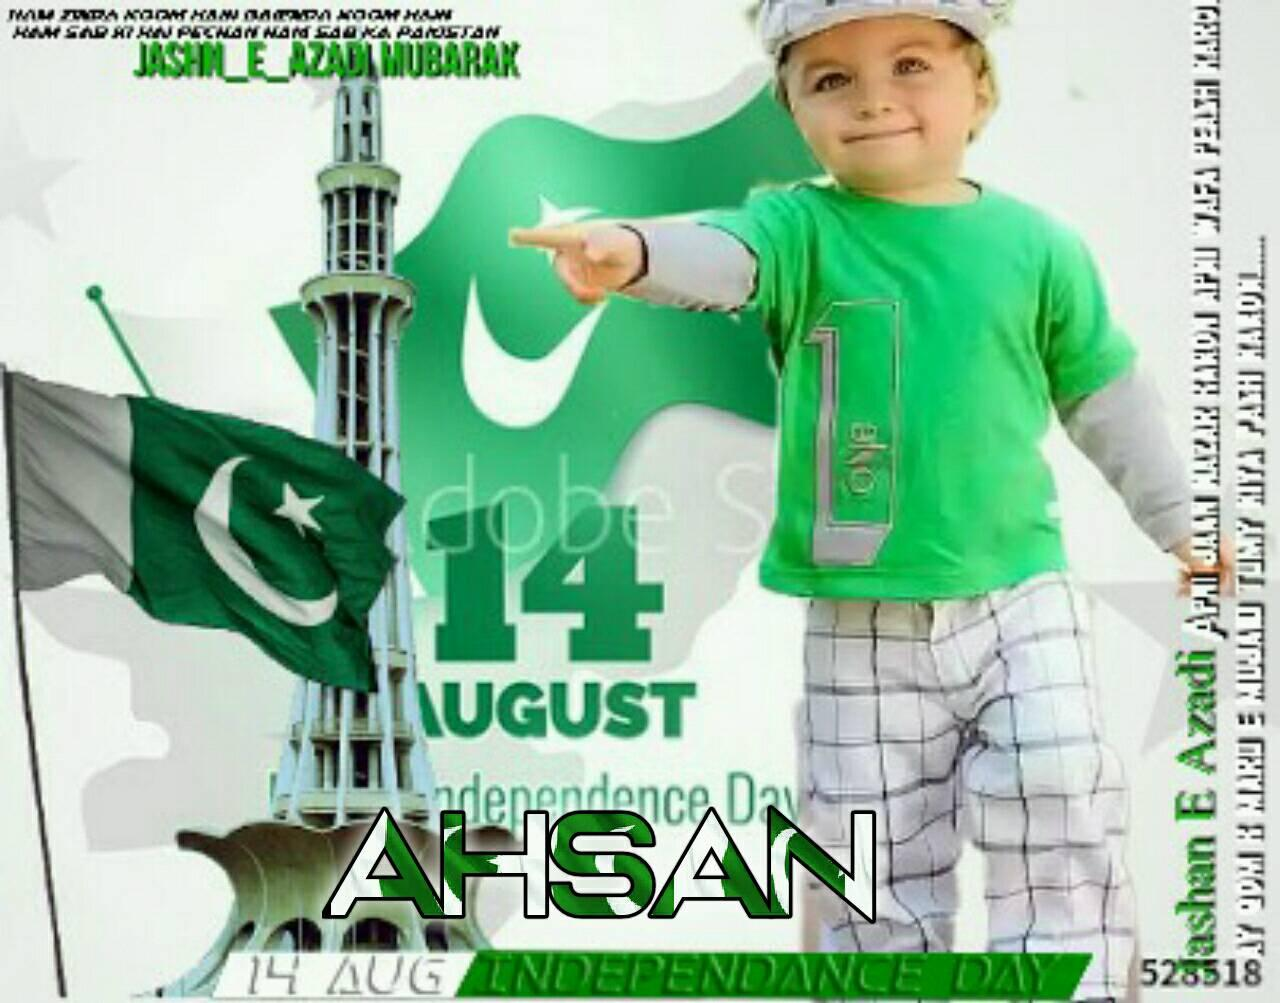 14 august pakistan independence day 2018